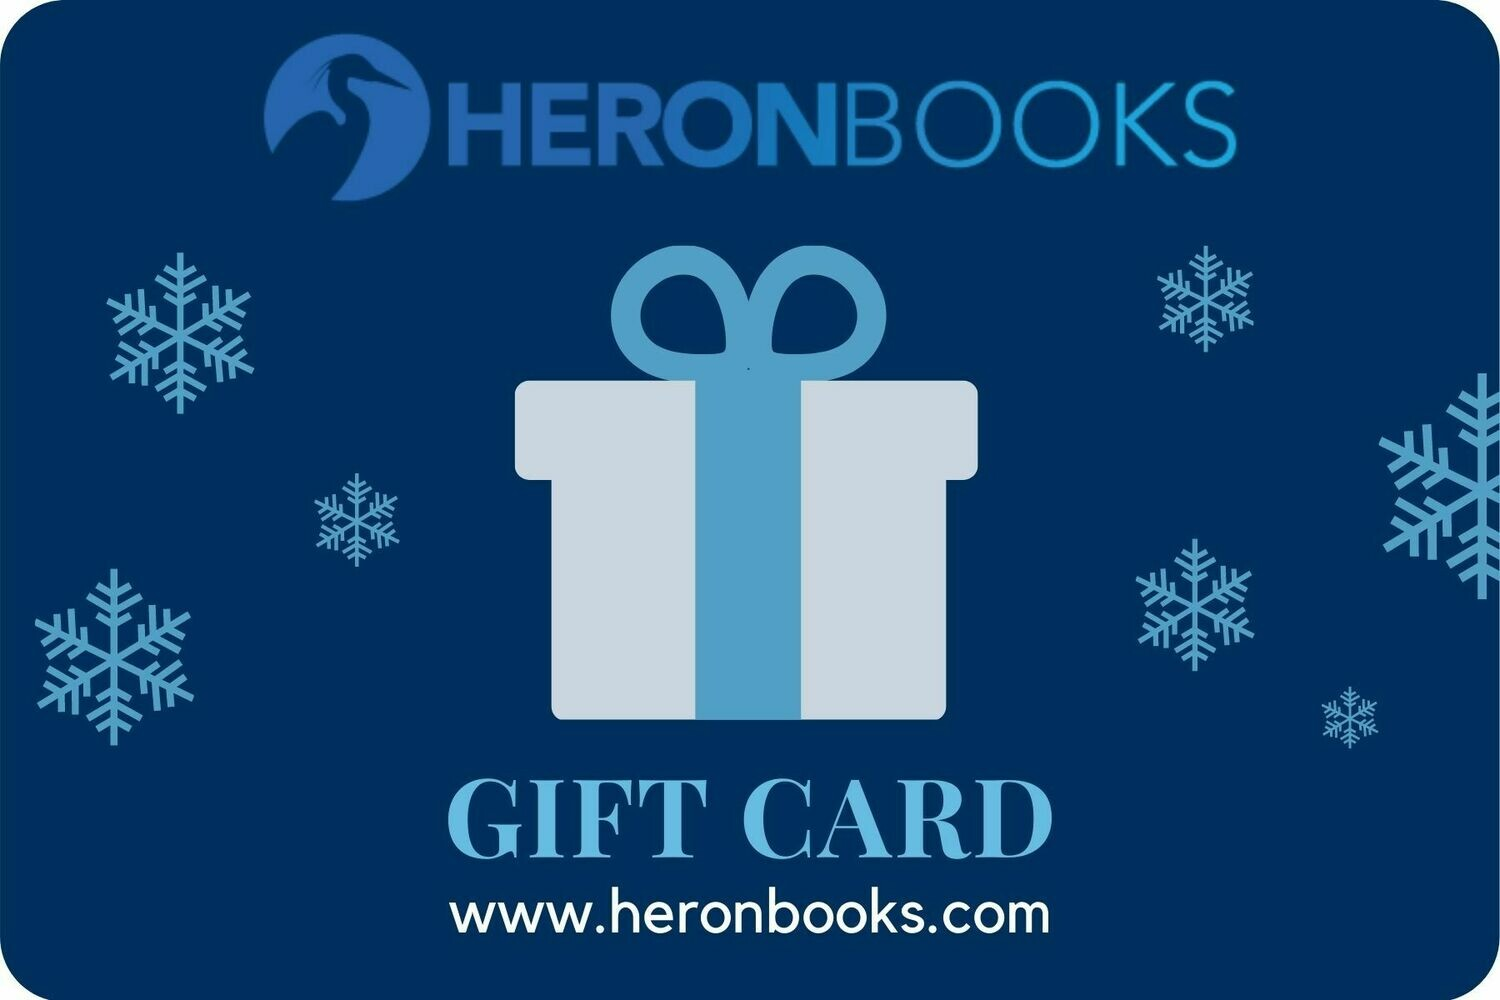 Heron Books Gift Card